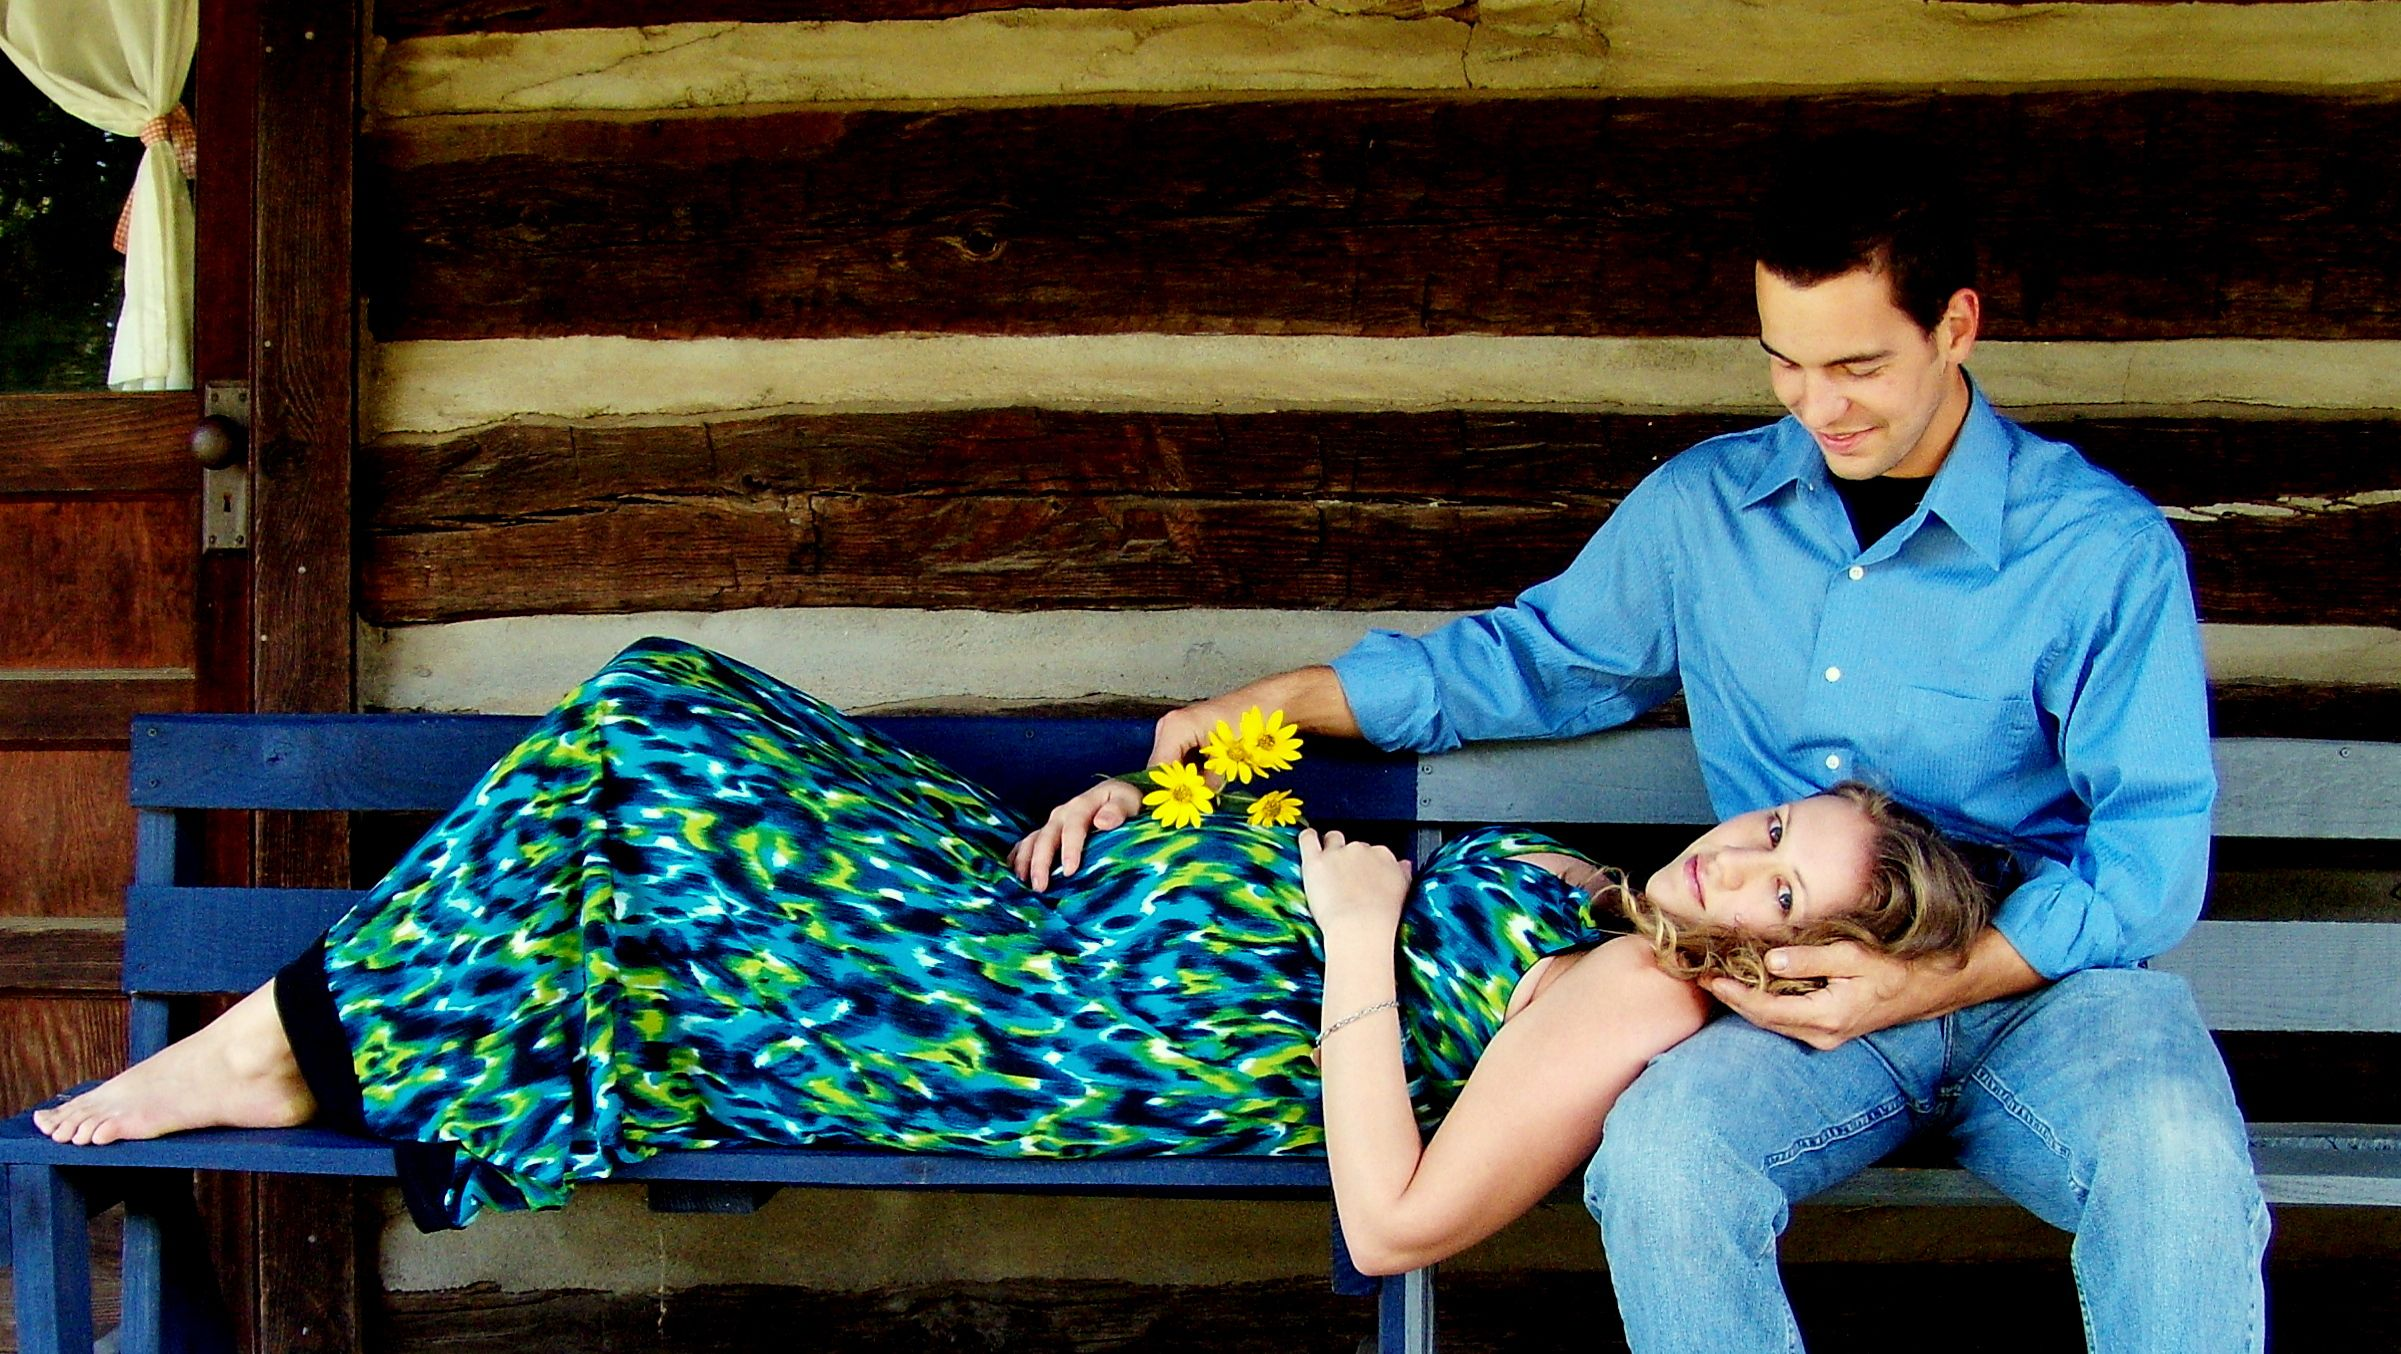 Bench at a park. My favorite pregnancy photo